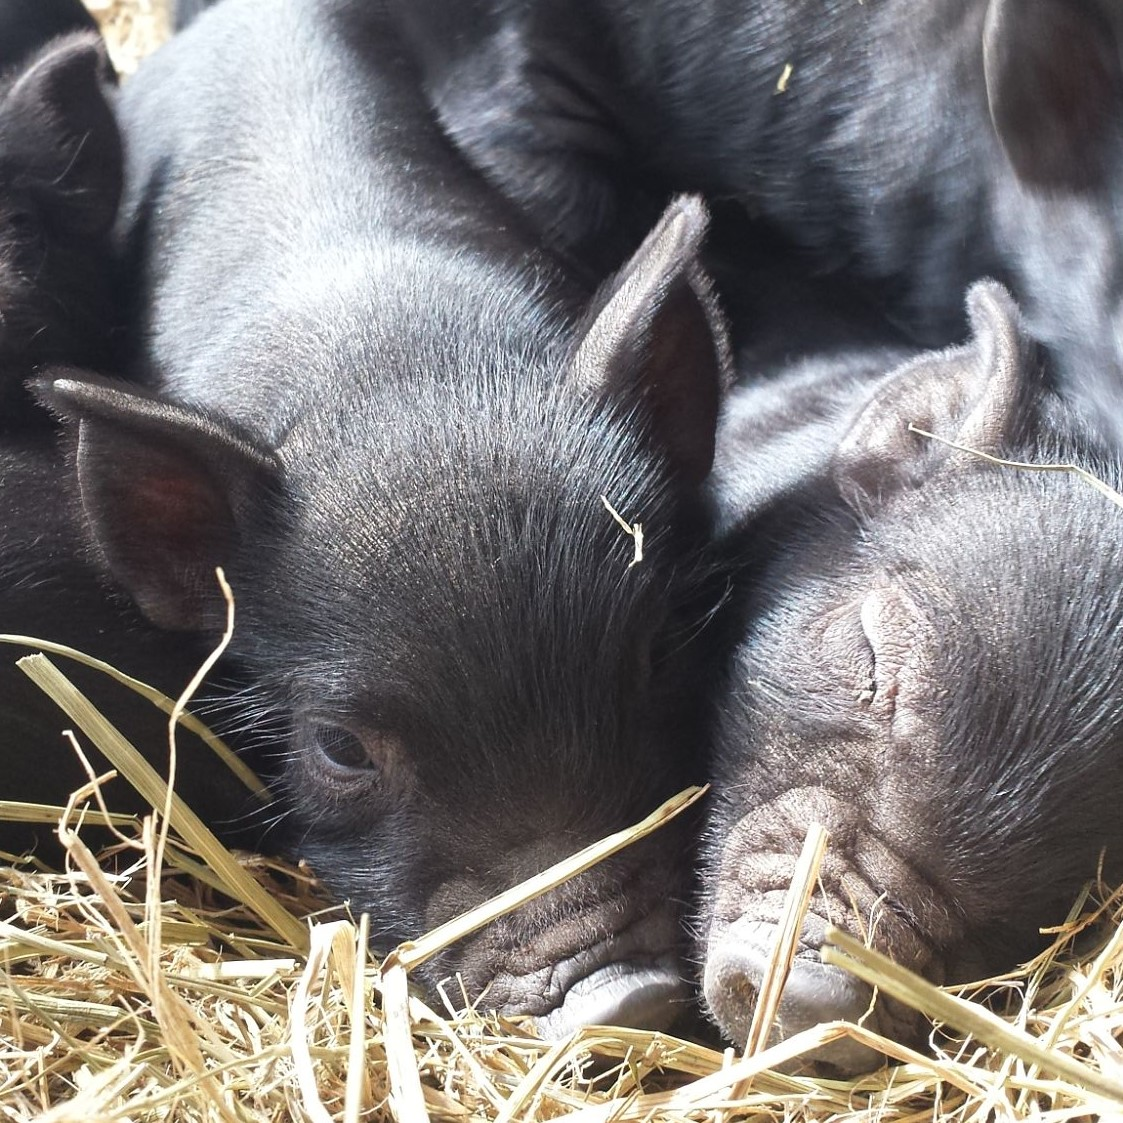 Piglets & Hogs - We pride ourselves on only registering the most exceptional examples of the breed, which is usually no more than two or three hogs a year. If you are looking for registered hogs or piglets, please contact us to see what we have available or to get on our waiting list. At the very least we can recommend you to another breeder if we don't have anything available.We usually have feeders (barrows only) of varying ages for sale.